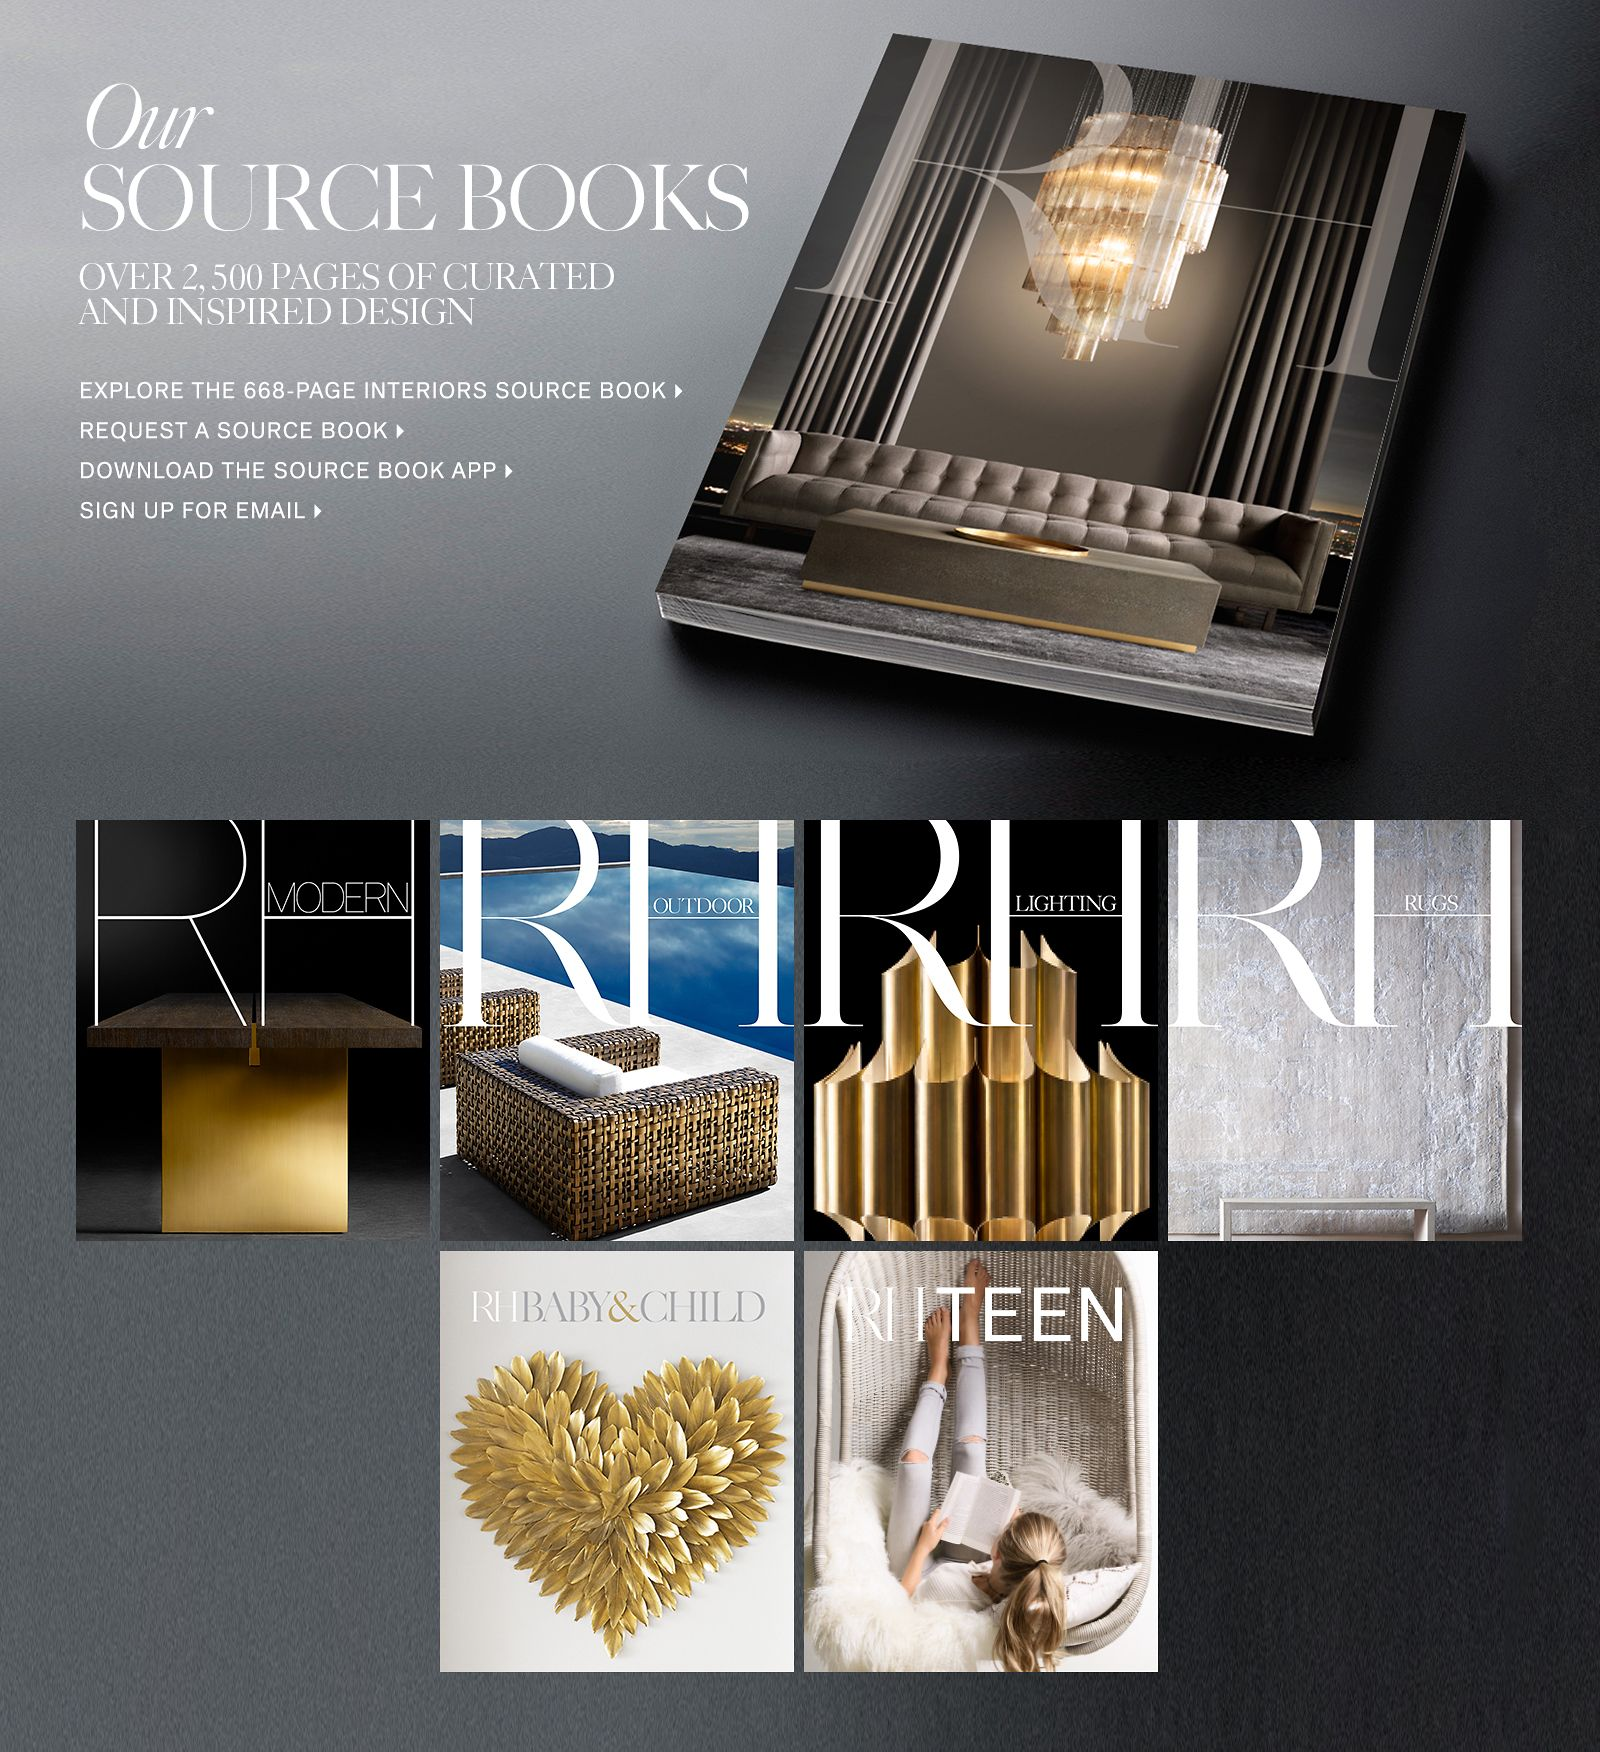 RH Source Books. Over 2,500 pages of curated and inspired design.